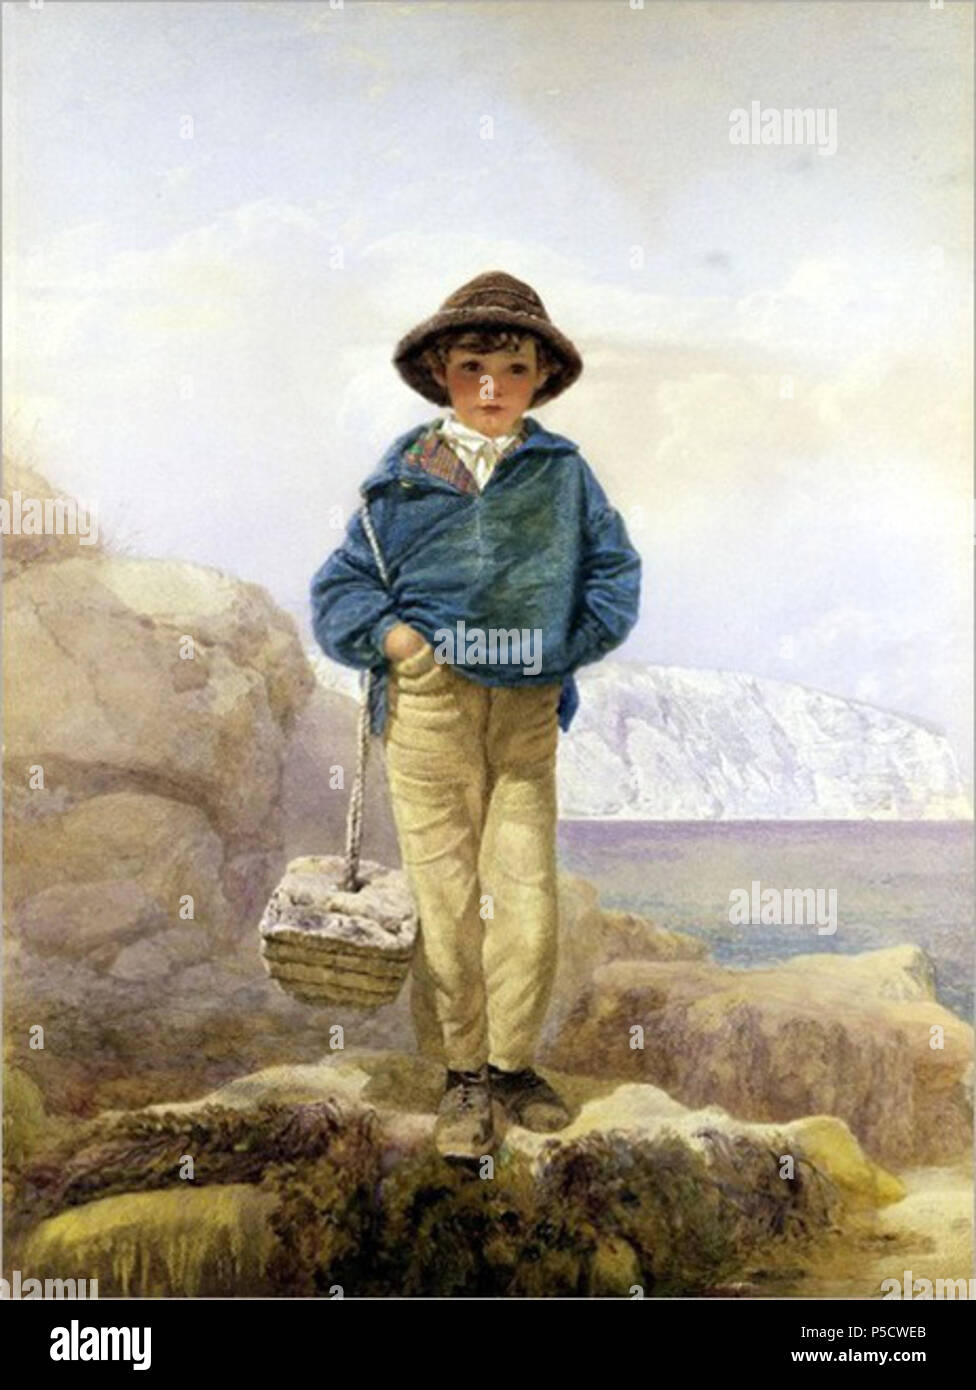 N/A. A Fisher Boy . Unknown date. Alfred Downing Fripp (1822–1895) 43 A Fisher Boy by Alfred Downing Fripp - Stock Image